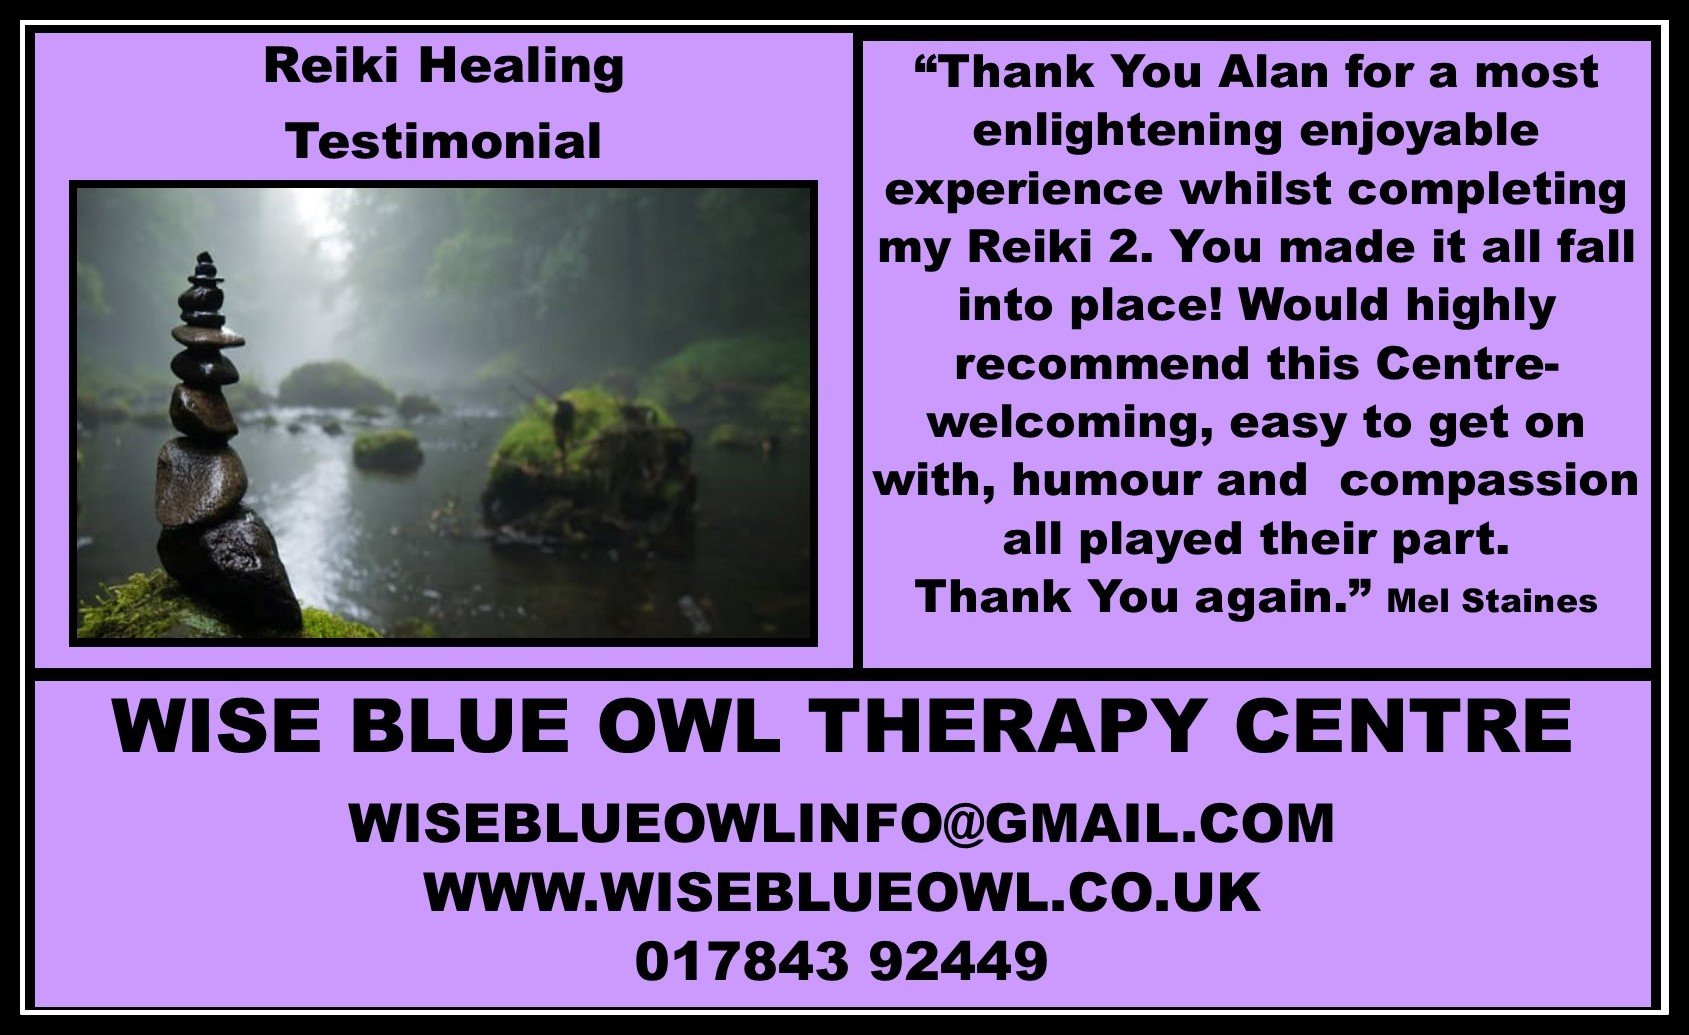 reiki training courses poster for wise blue owl therapy centre